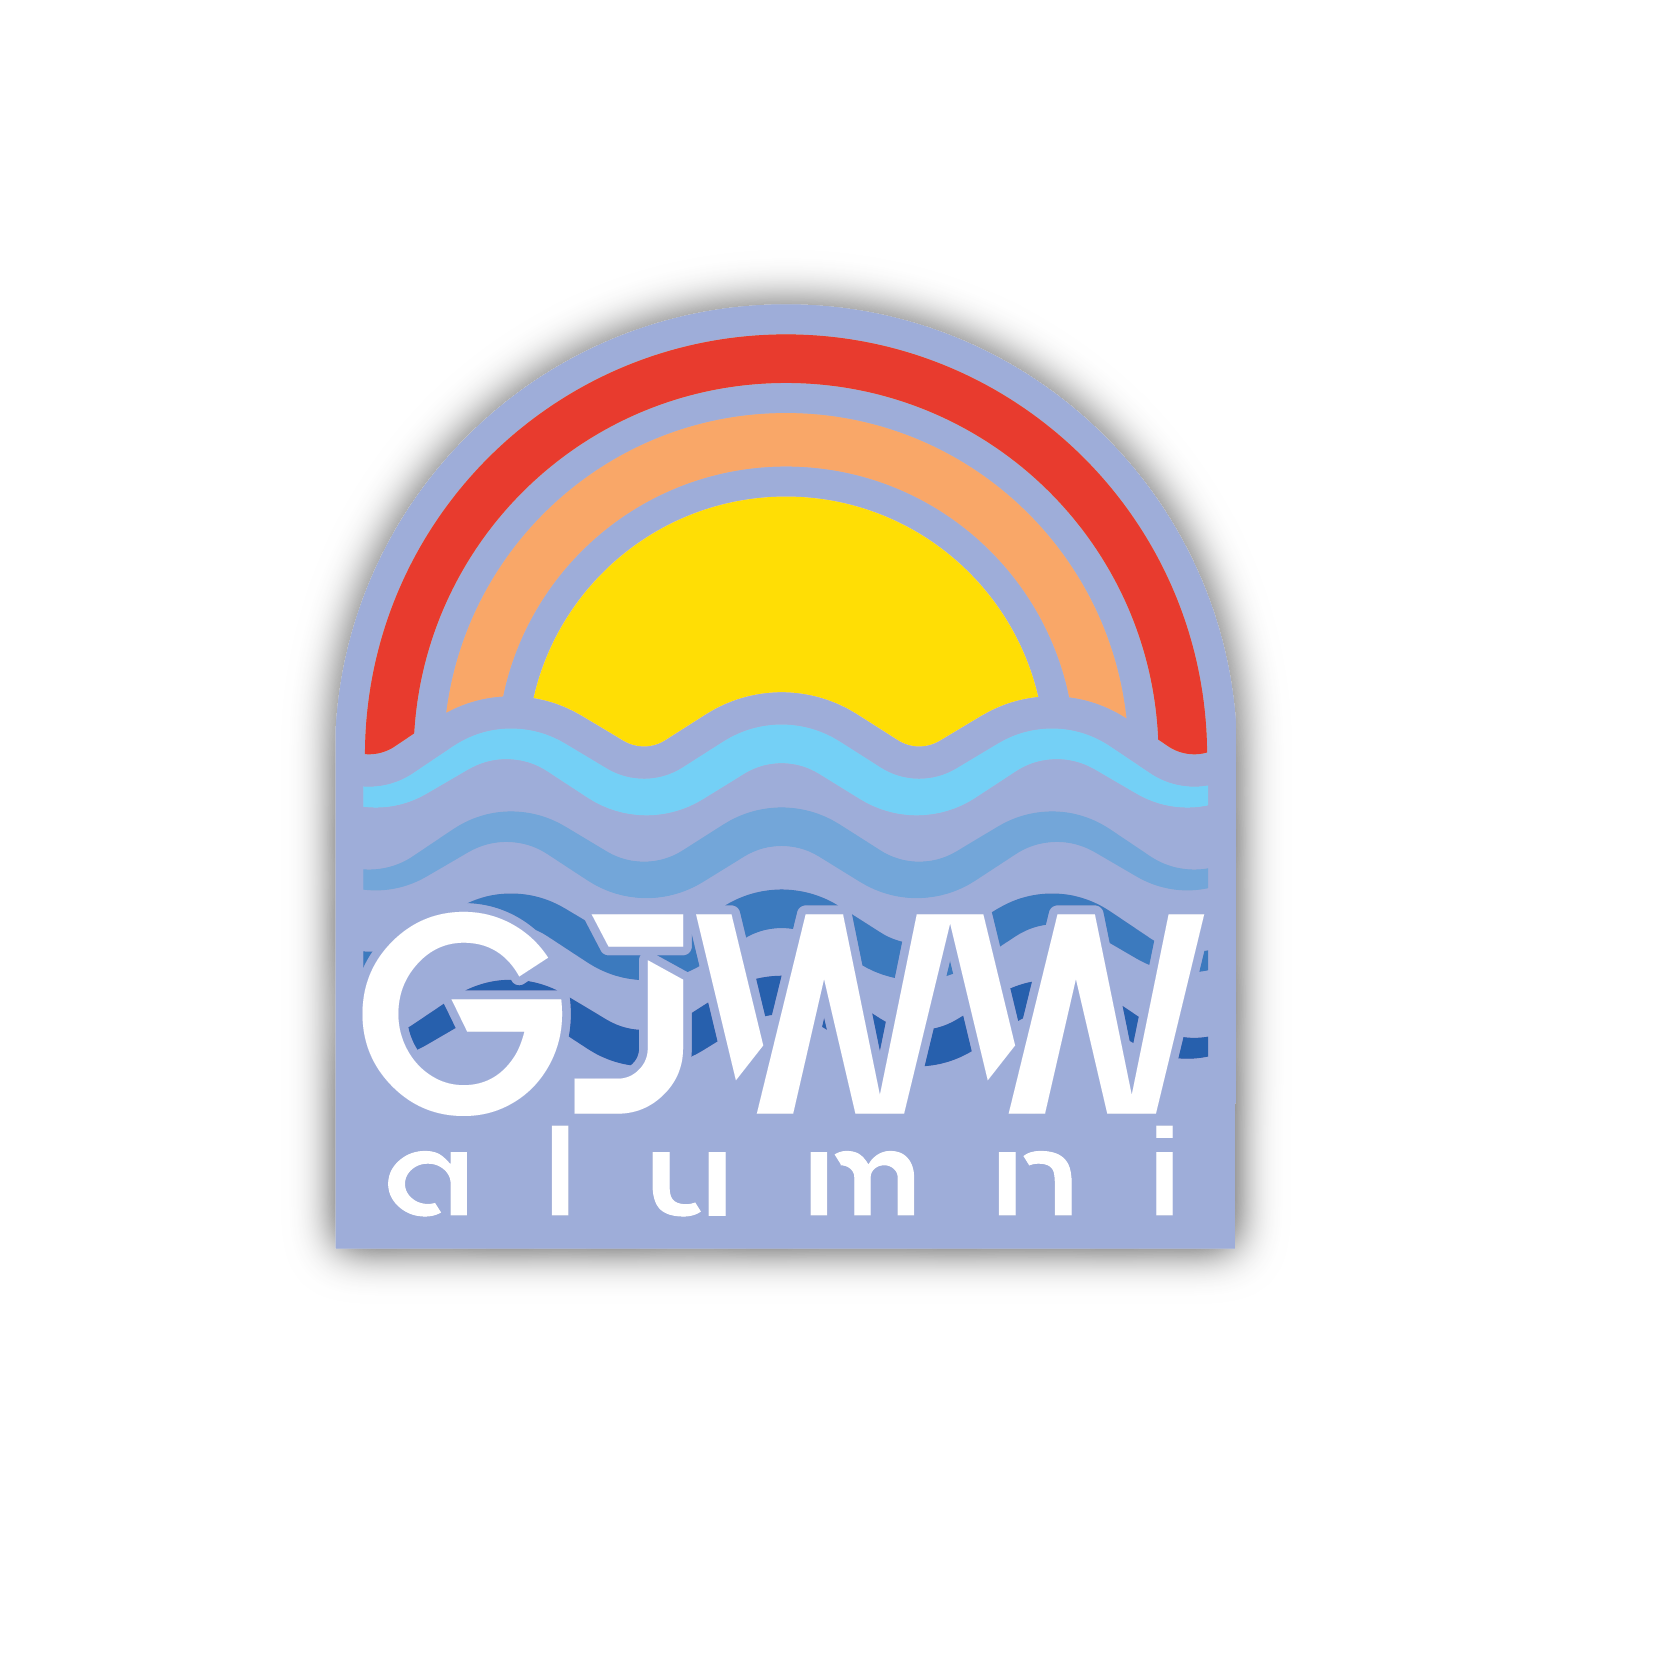 GJWW alumni sticker